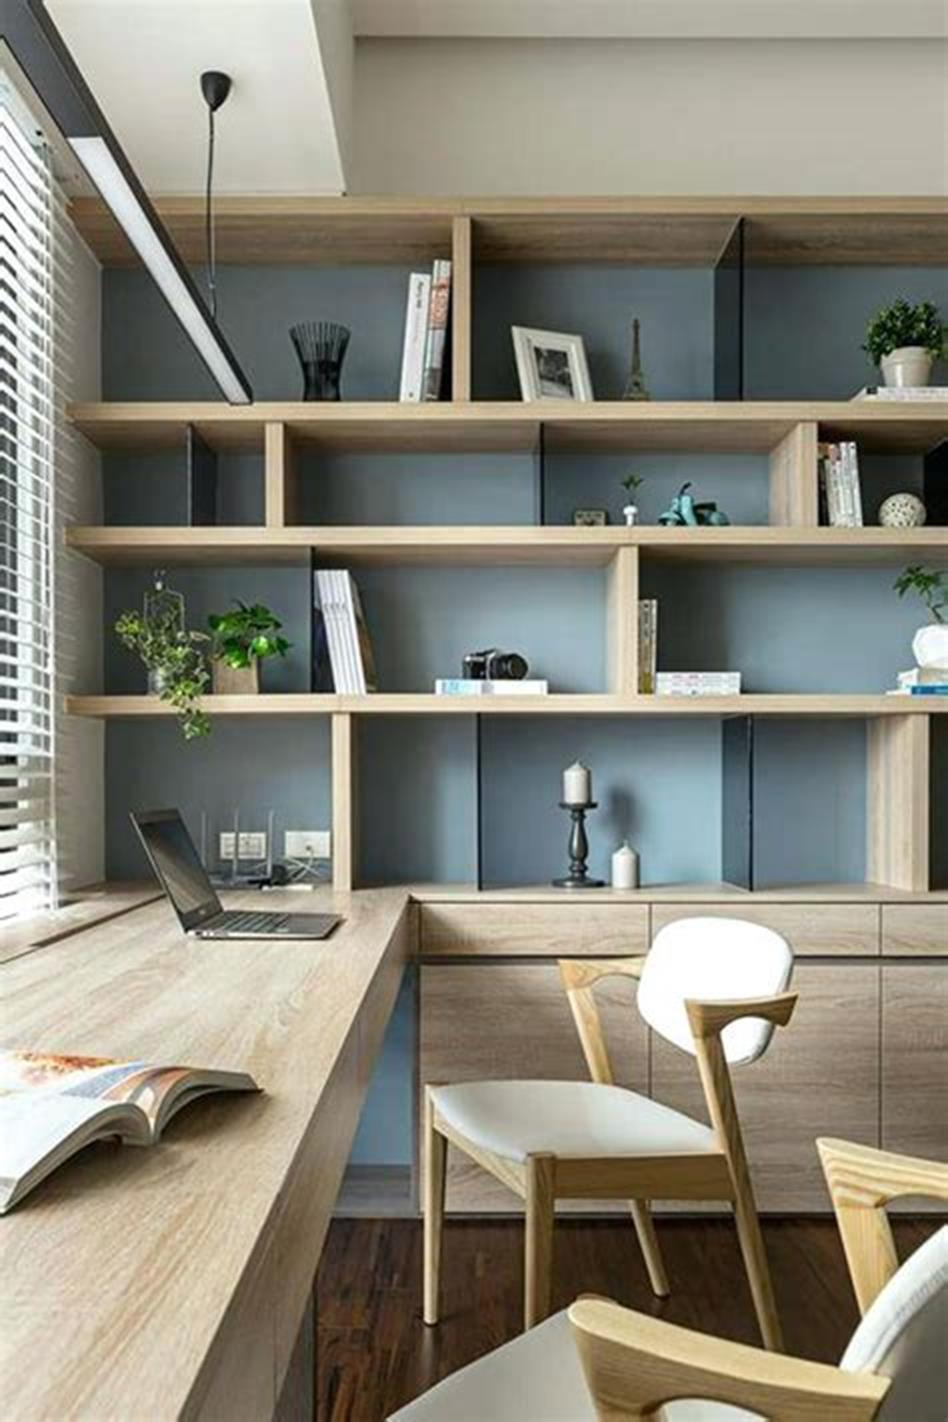 50 Best Small Space Office Decorating Ideas On a Budget 2019 10